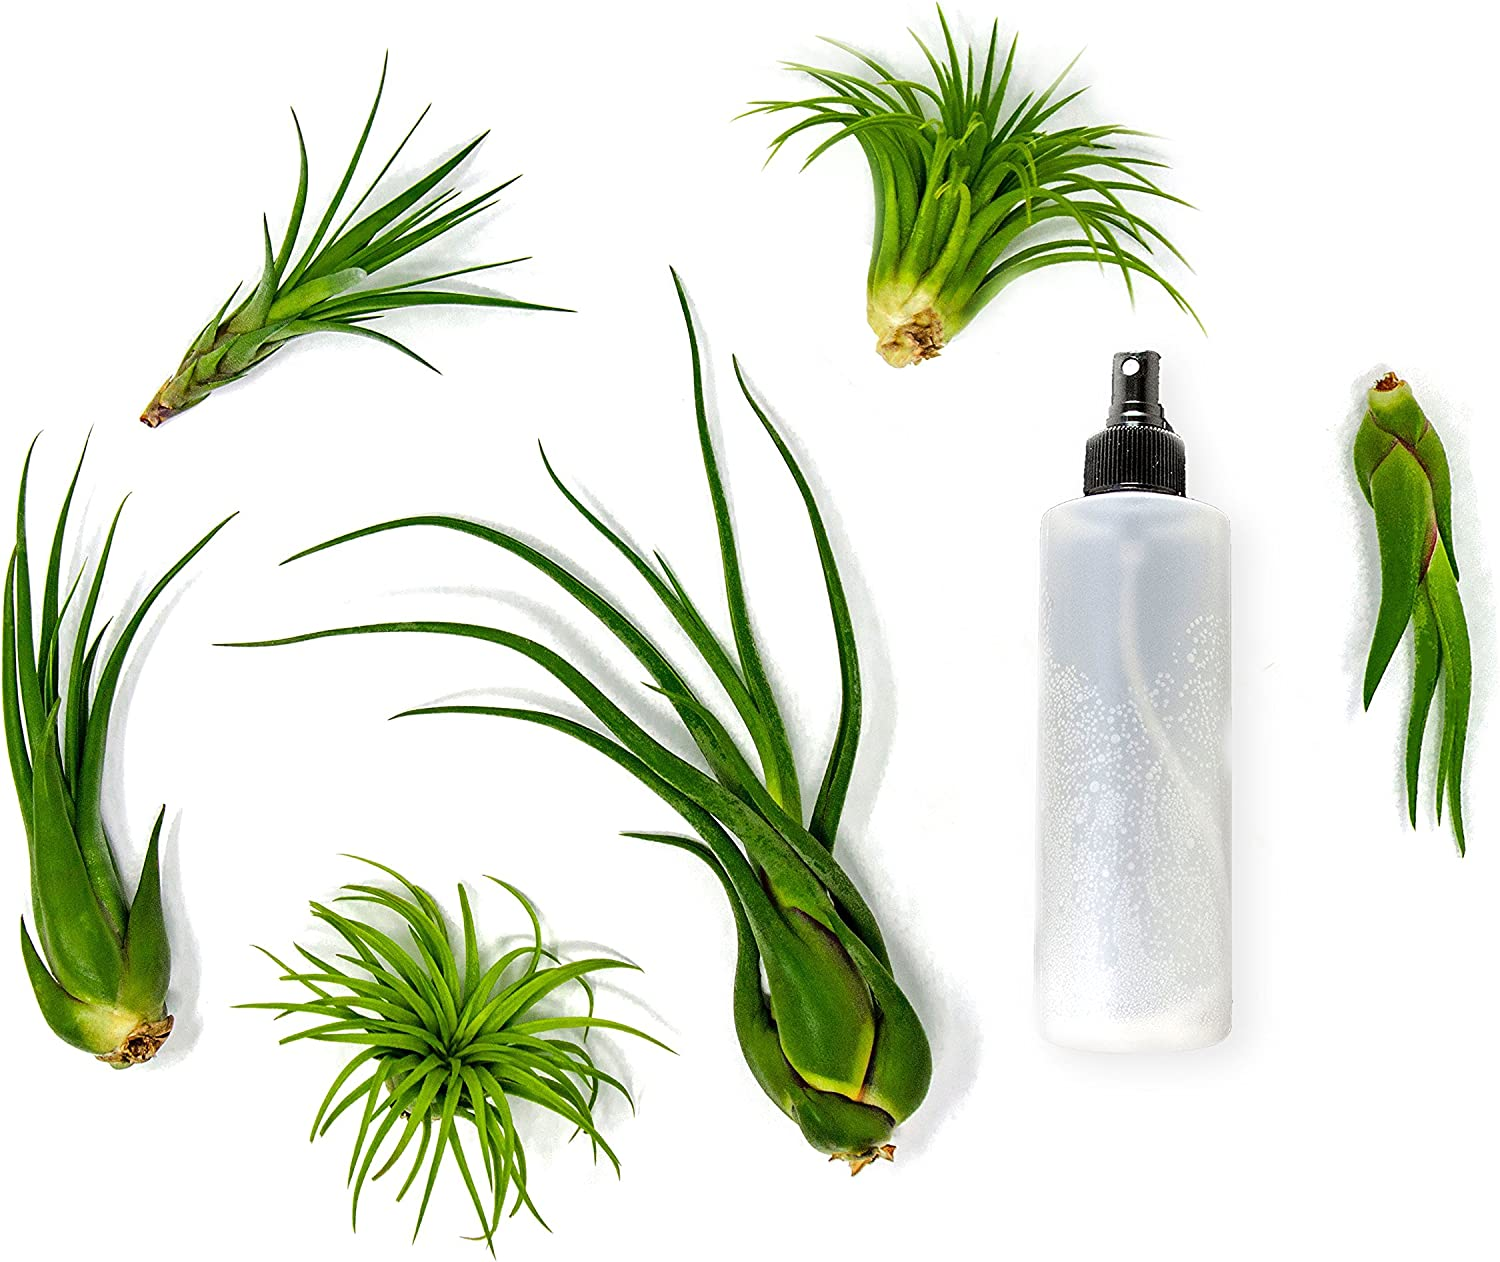 Plants for Pets 24 Air Plant Variety Pack Large Tillandsia Terrarium Kit with Spray Bottle Mister for Water Fertilizer Assorted Live Airplants